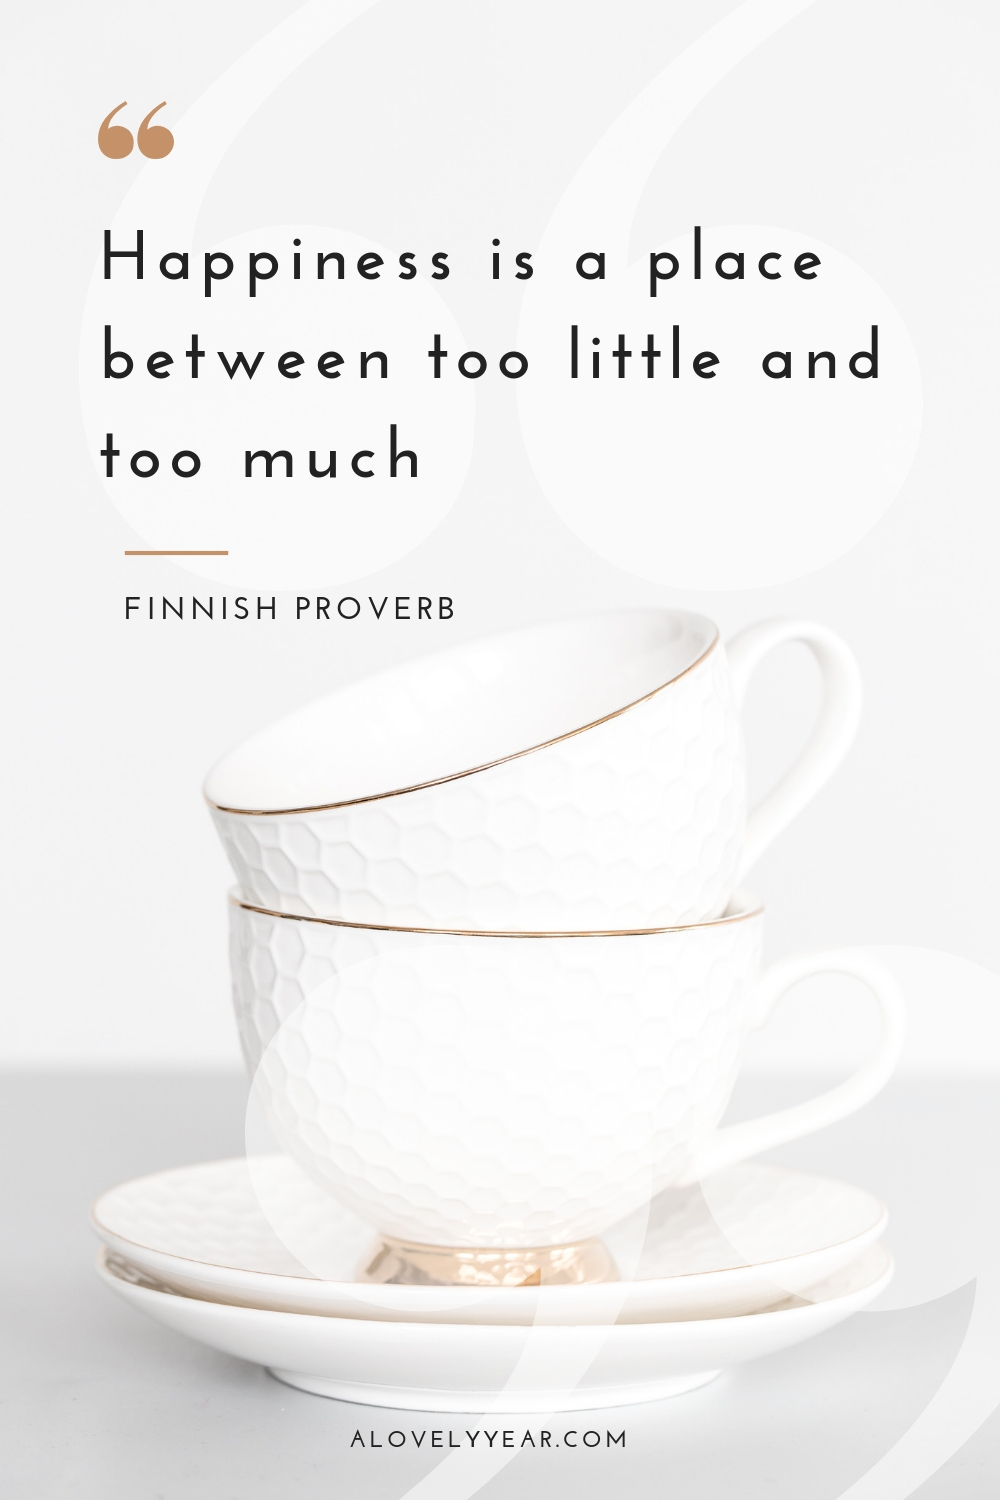 Decluttering quotes to motivate and inspire you   Happiness is a place between too little and too much - Finnish proverb